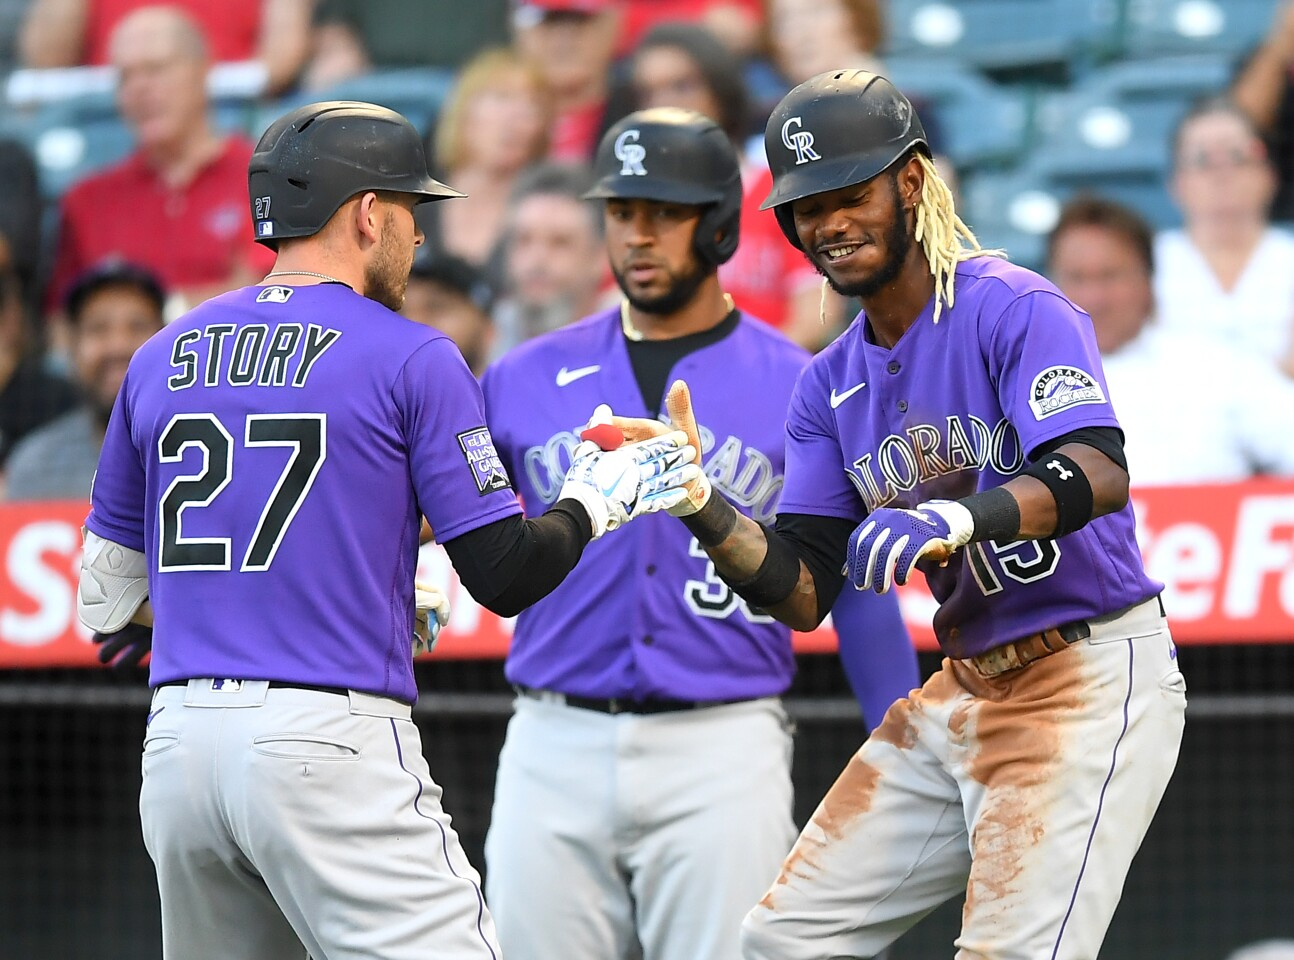 ANAHEIM, CA - JULY 28: Trevor Story #27 celebrates with Raimel Tapia #15 of the Colorado Rockies after hitting a two run home run in the first inning of the game against the Los Angeles Angels at Angel Stadium of Anaheim on July 28, 2021 in Anaheim, California. (Photo by Jayne Kamin-Oncea/Getty Images)